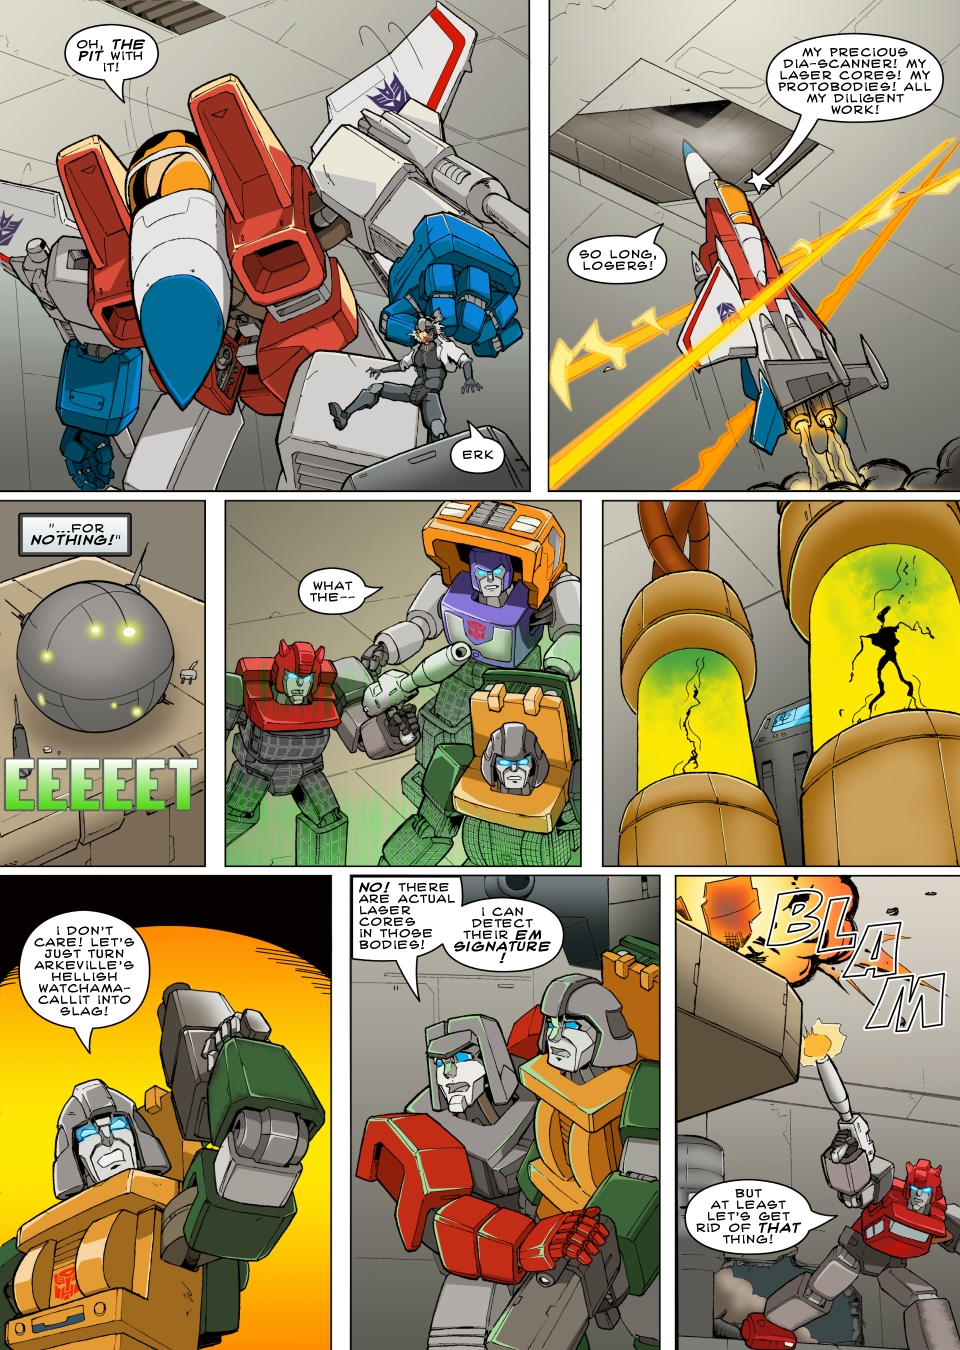 Attack of the DIAclones page 23